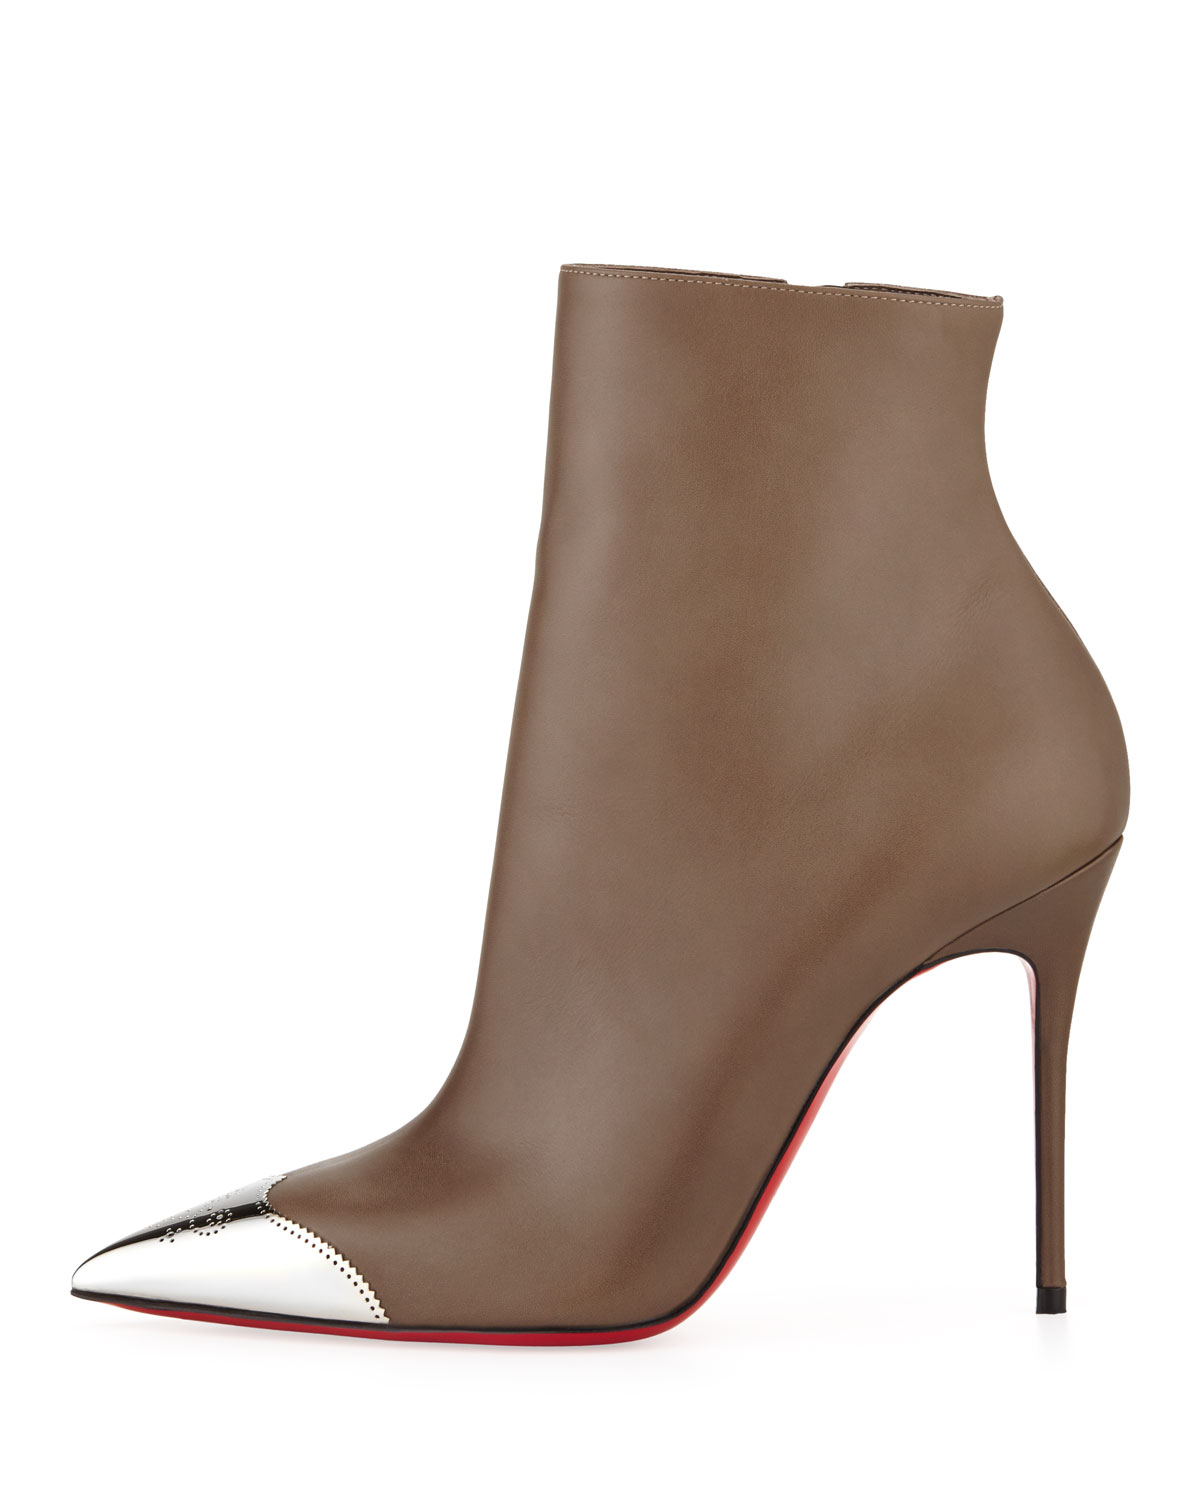 replica louboutin shoes for sale - Christian louboutin Calamijane Red Sole Ankle Boot with Metallic ...